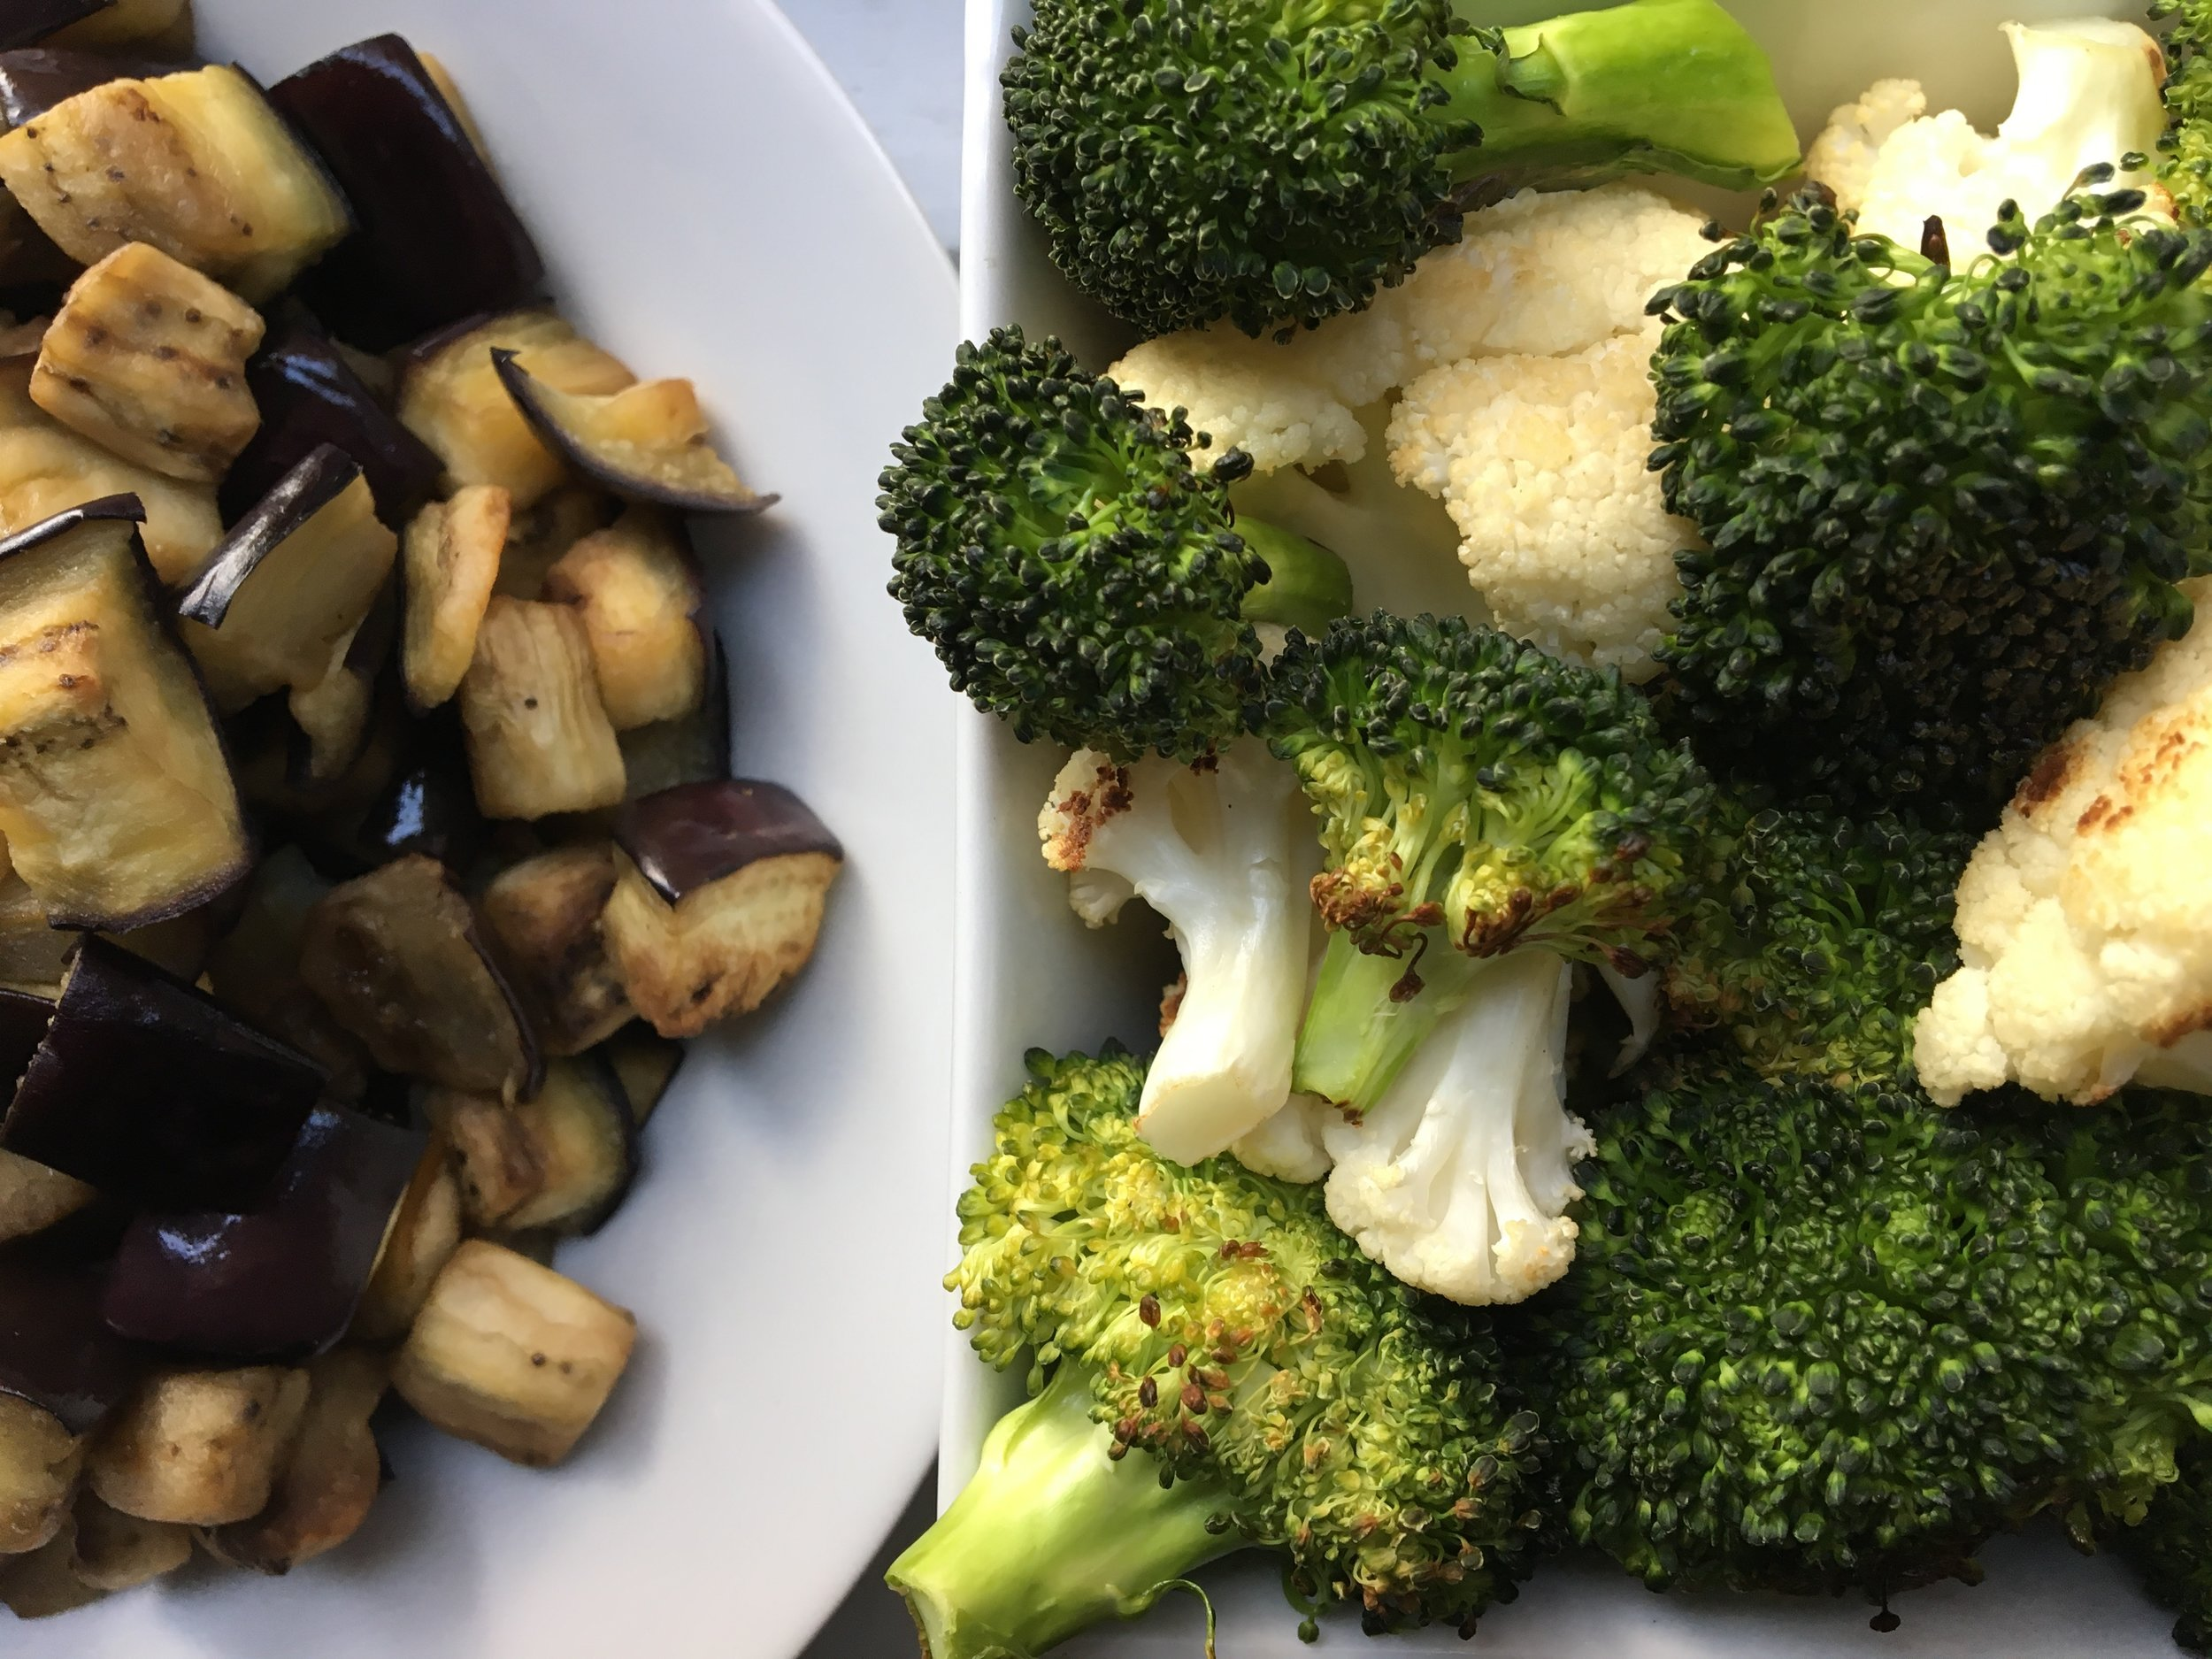 Roasted Eggplant / Broccoli / Cauliflower Building Blocks for Meal Prep